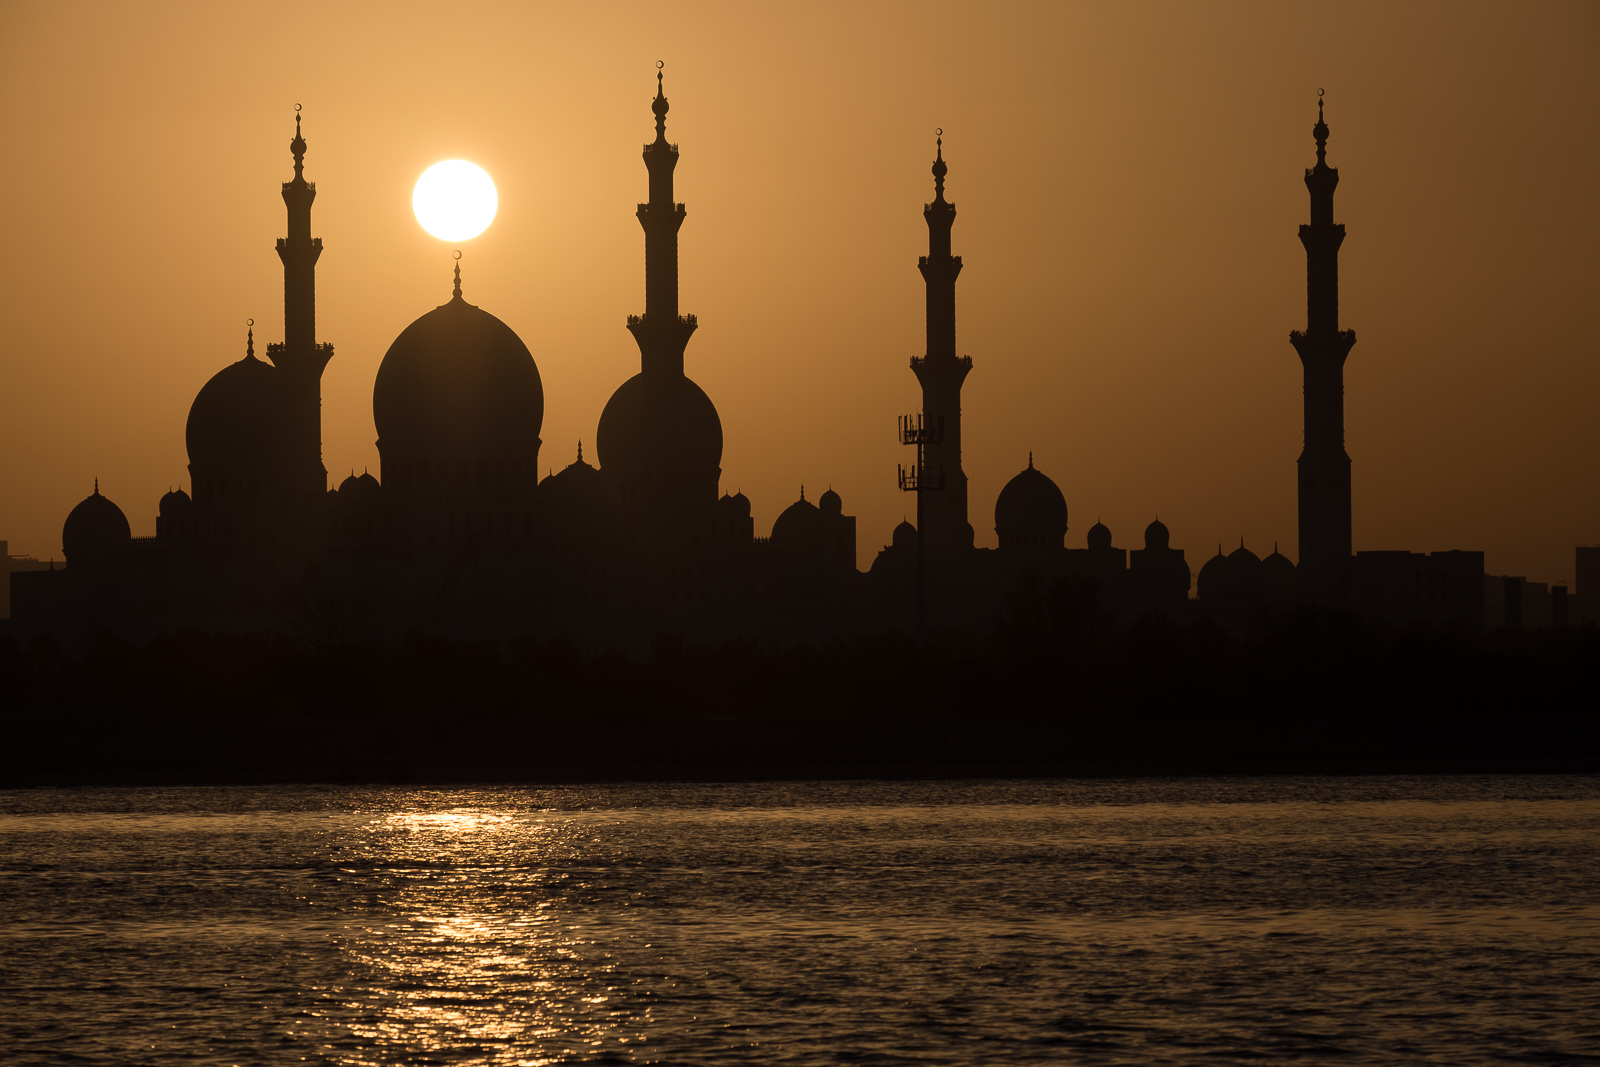 The Sheikh Zayed Grand Mosque at sunset, Abu Dhabi